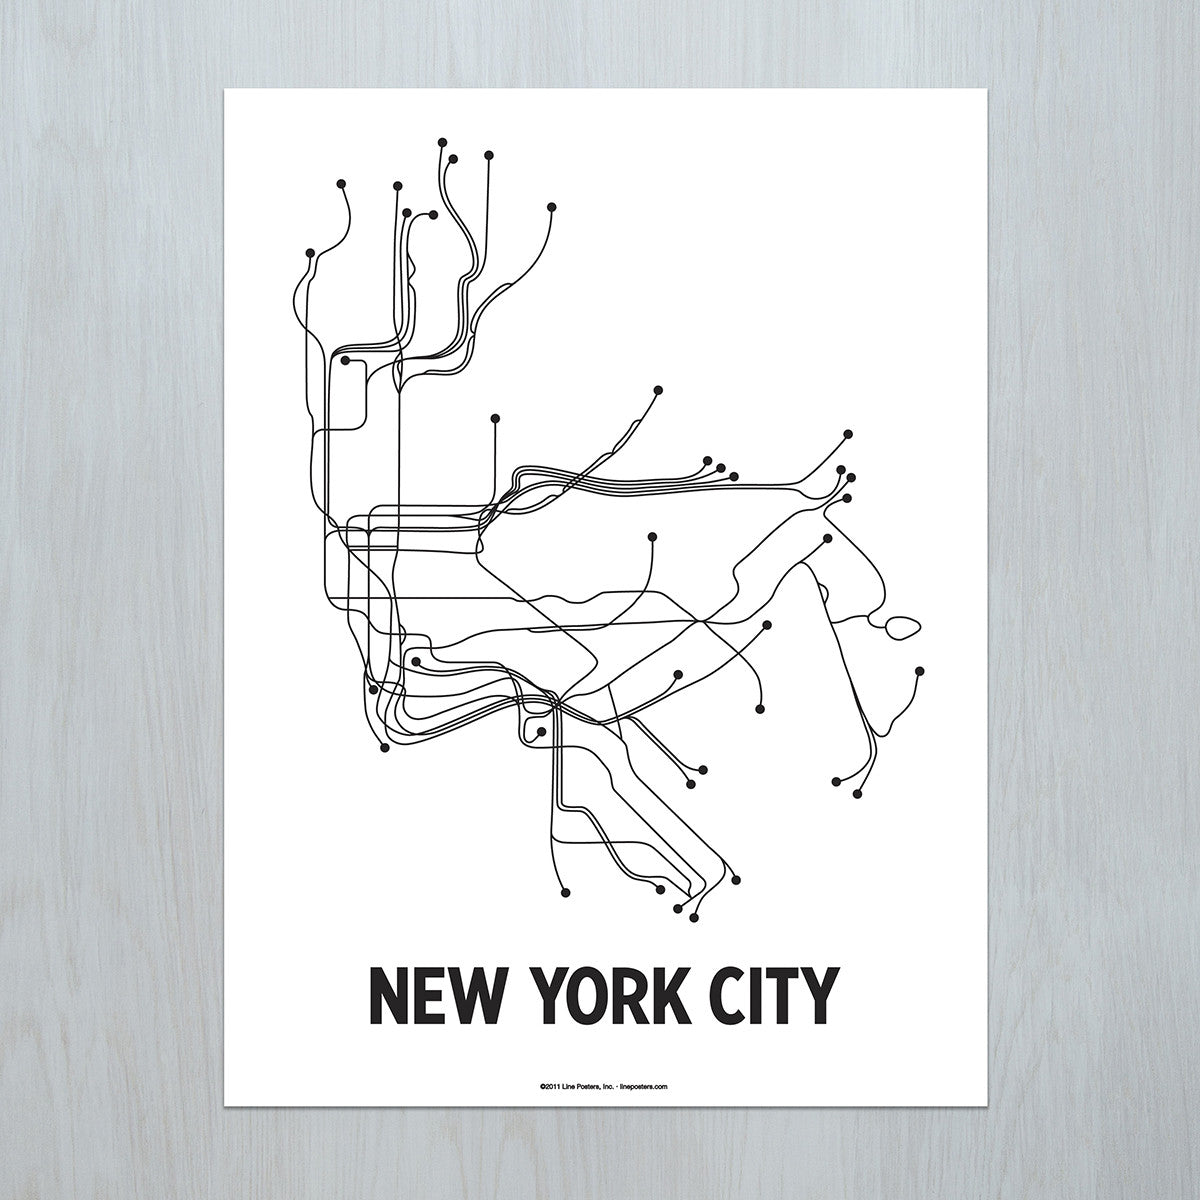 Toronto Subway Map Poster.New York City Poster Lineposters